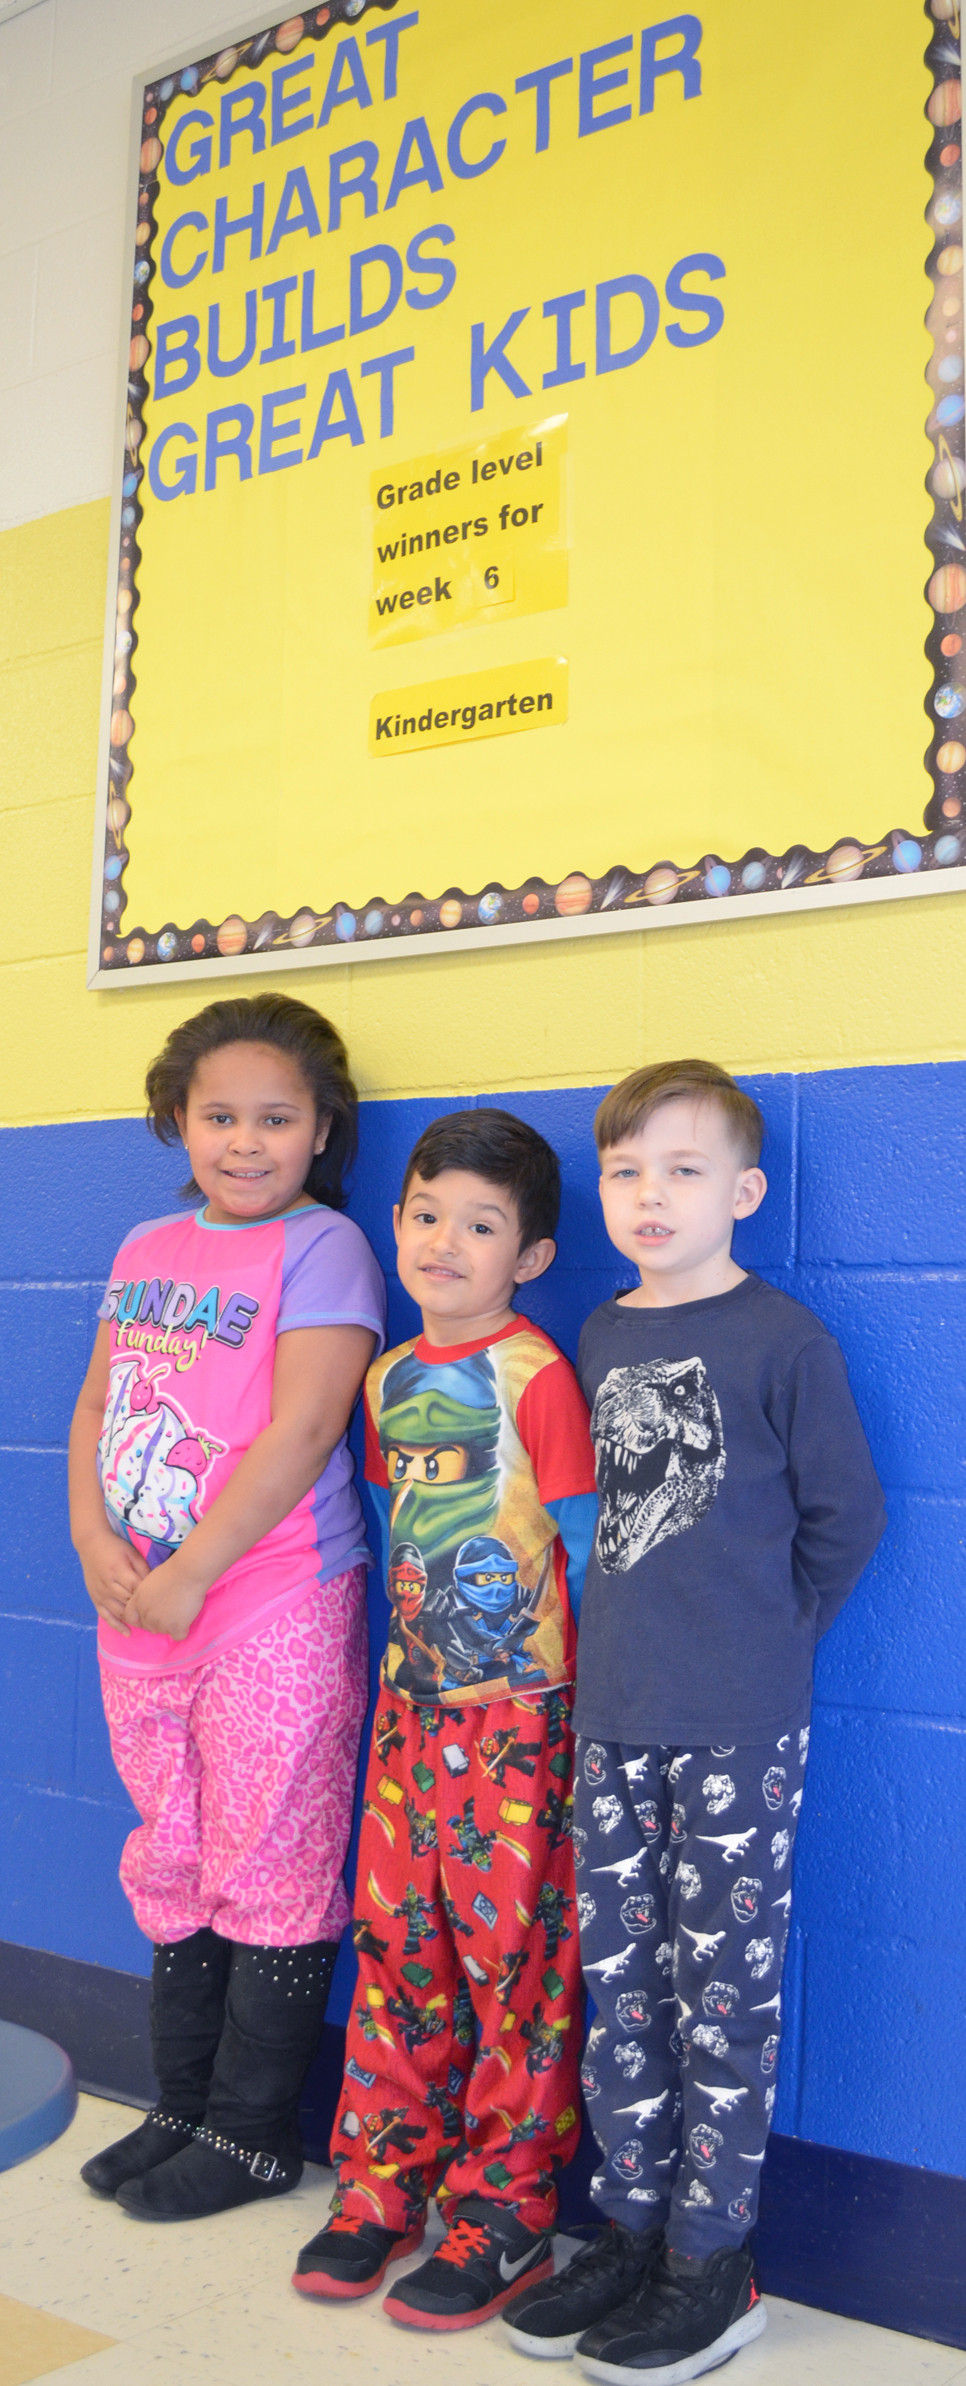 SIMMONS ELEMENTARY School first-graders Aaliyah Fisher and Kalel Hawkinson and kindergartner Leland Markwell recently explained what empathy, responsibility and kindness mean to them. Students are awarded mastery cards whenever they demonstrate an understanding of a positive character trait or value they've learned in school. (Photo by Bob Vlach)